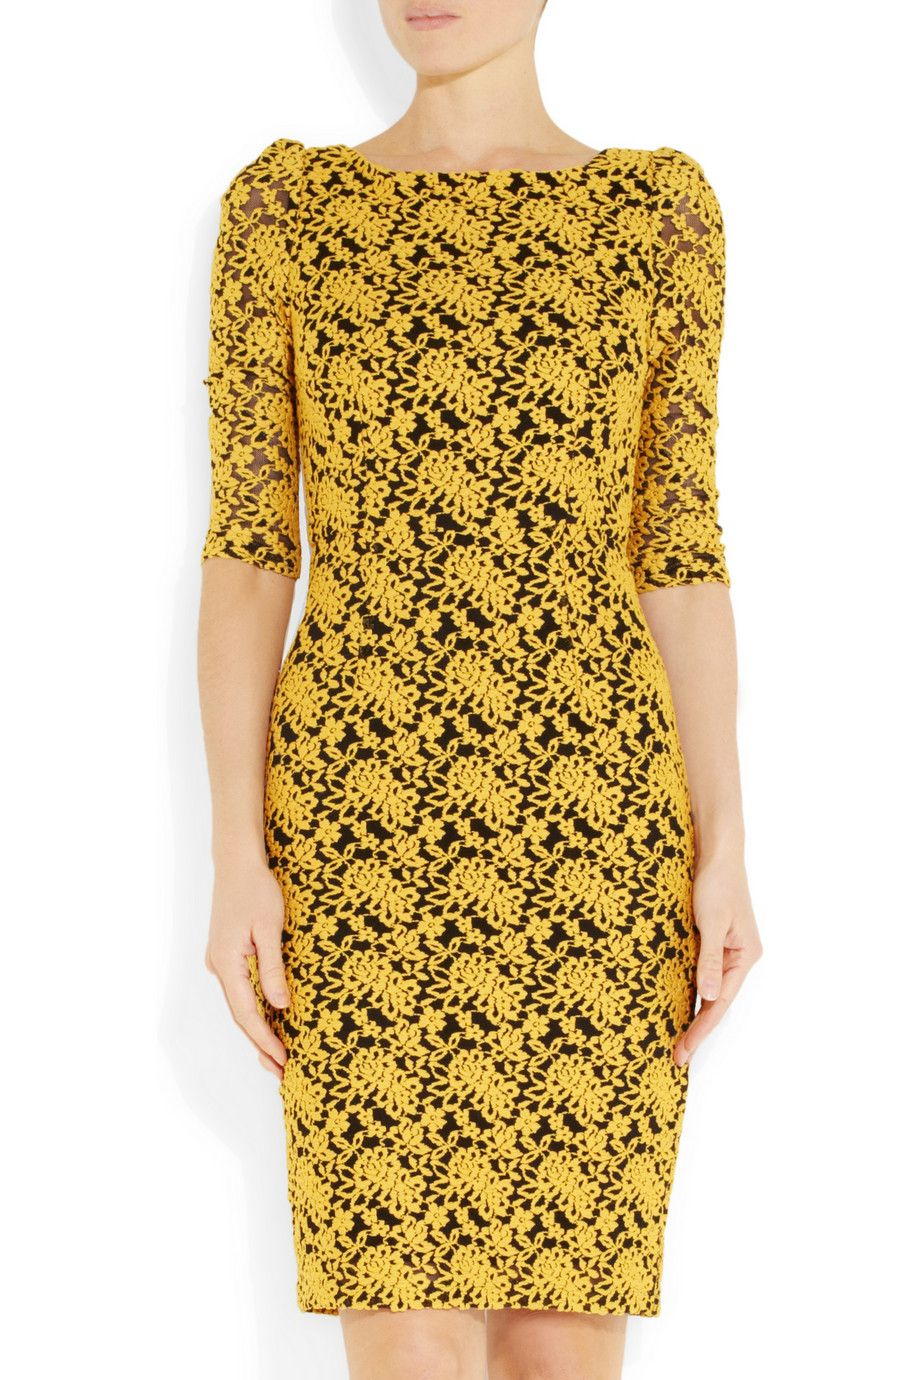 Alice + Olivia | March open back stretch lace dress | NET A